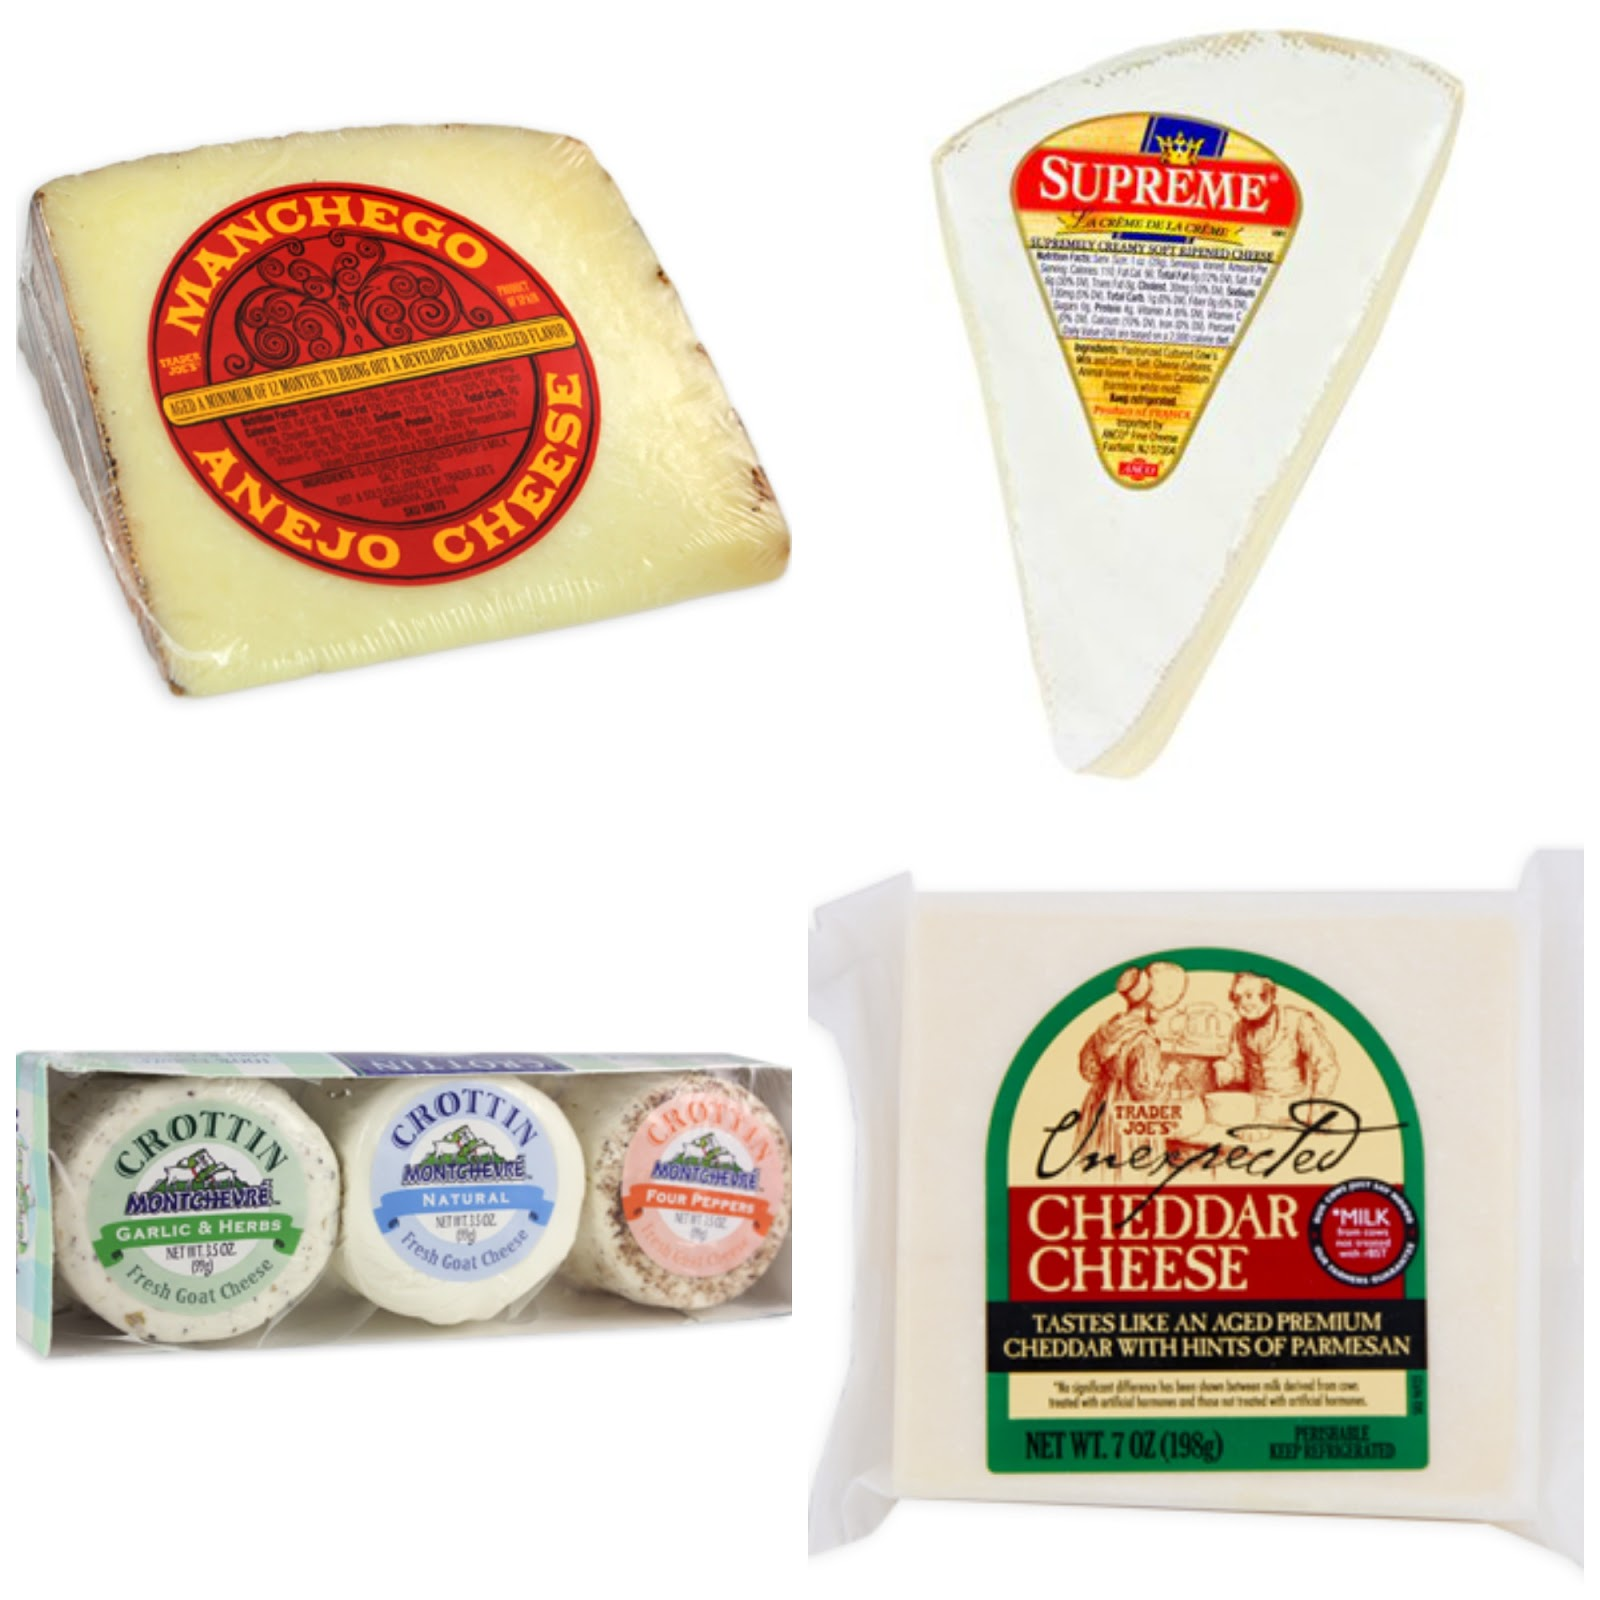 Manchego, brie, cheddar, and goat cheeses at trader joe's